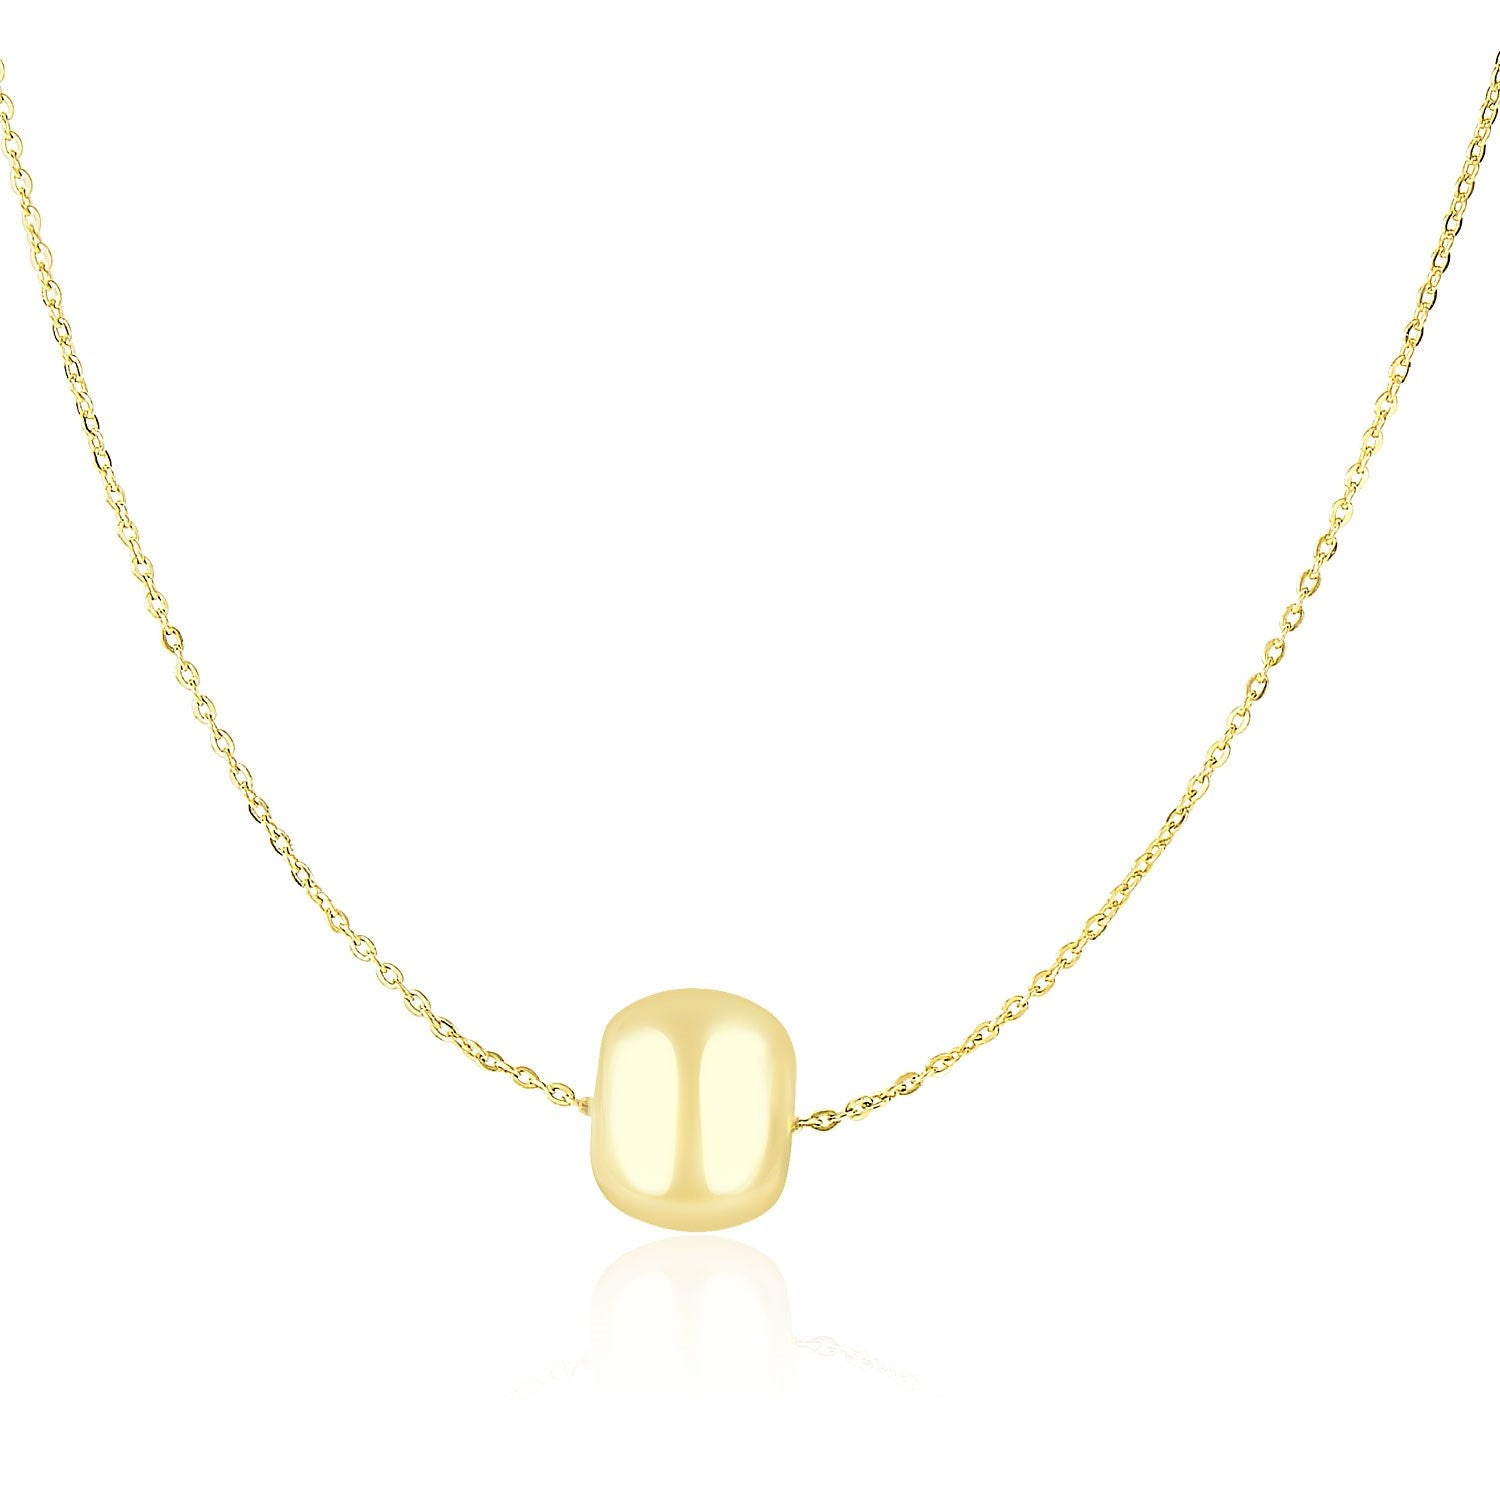 14K Yellow Gold Necklace with Shiny Barrel Bead Charm